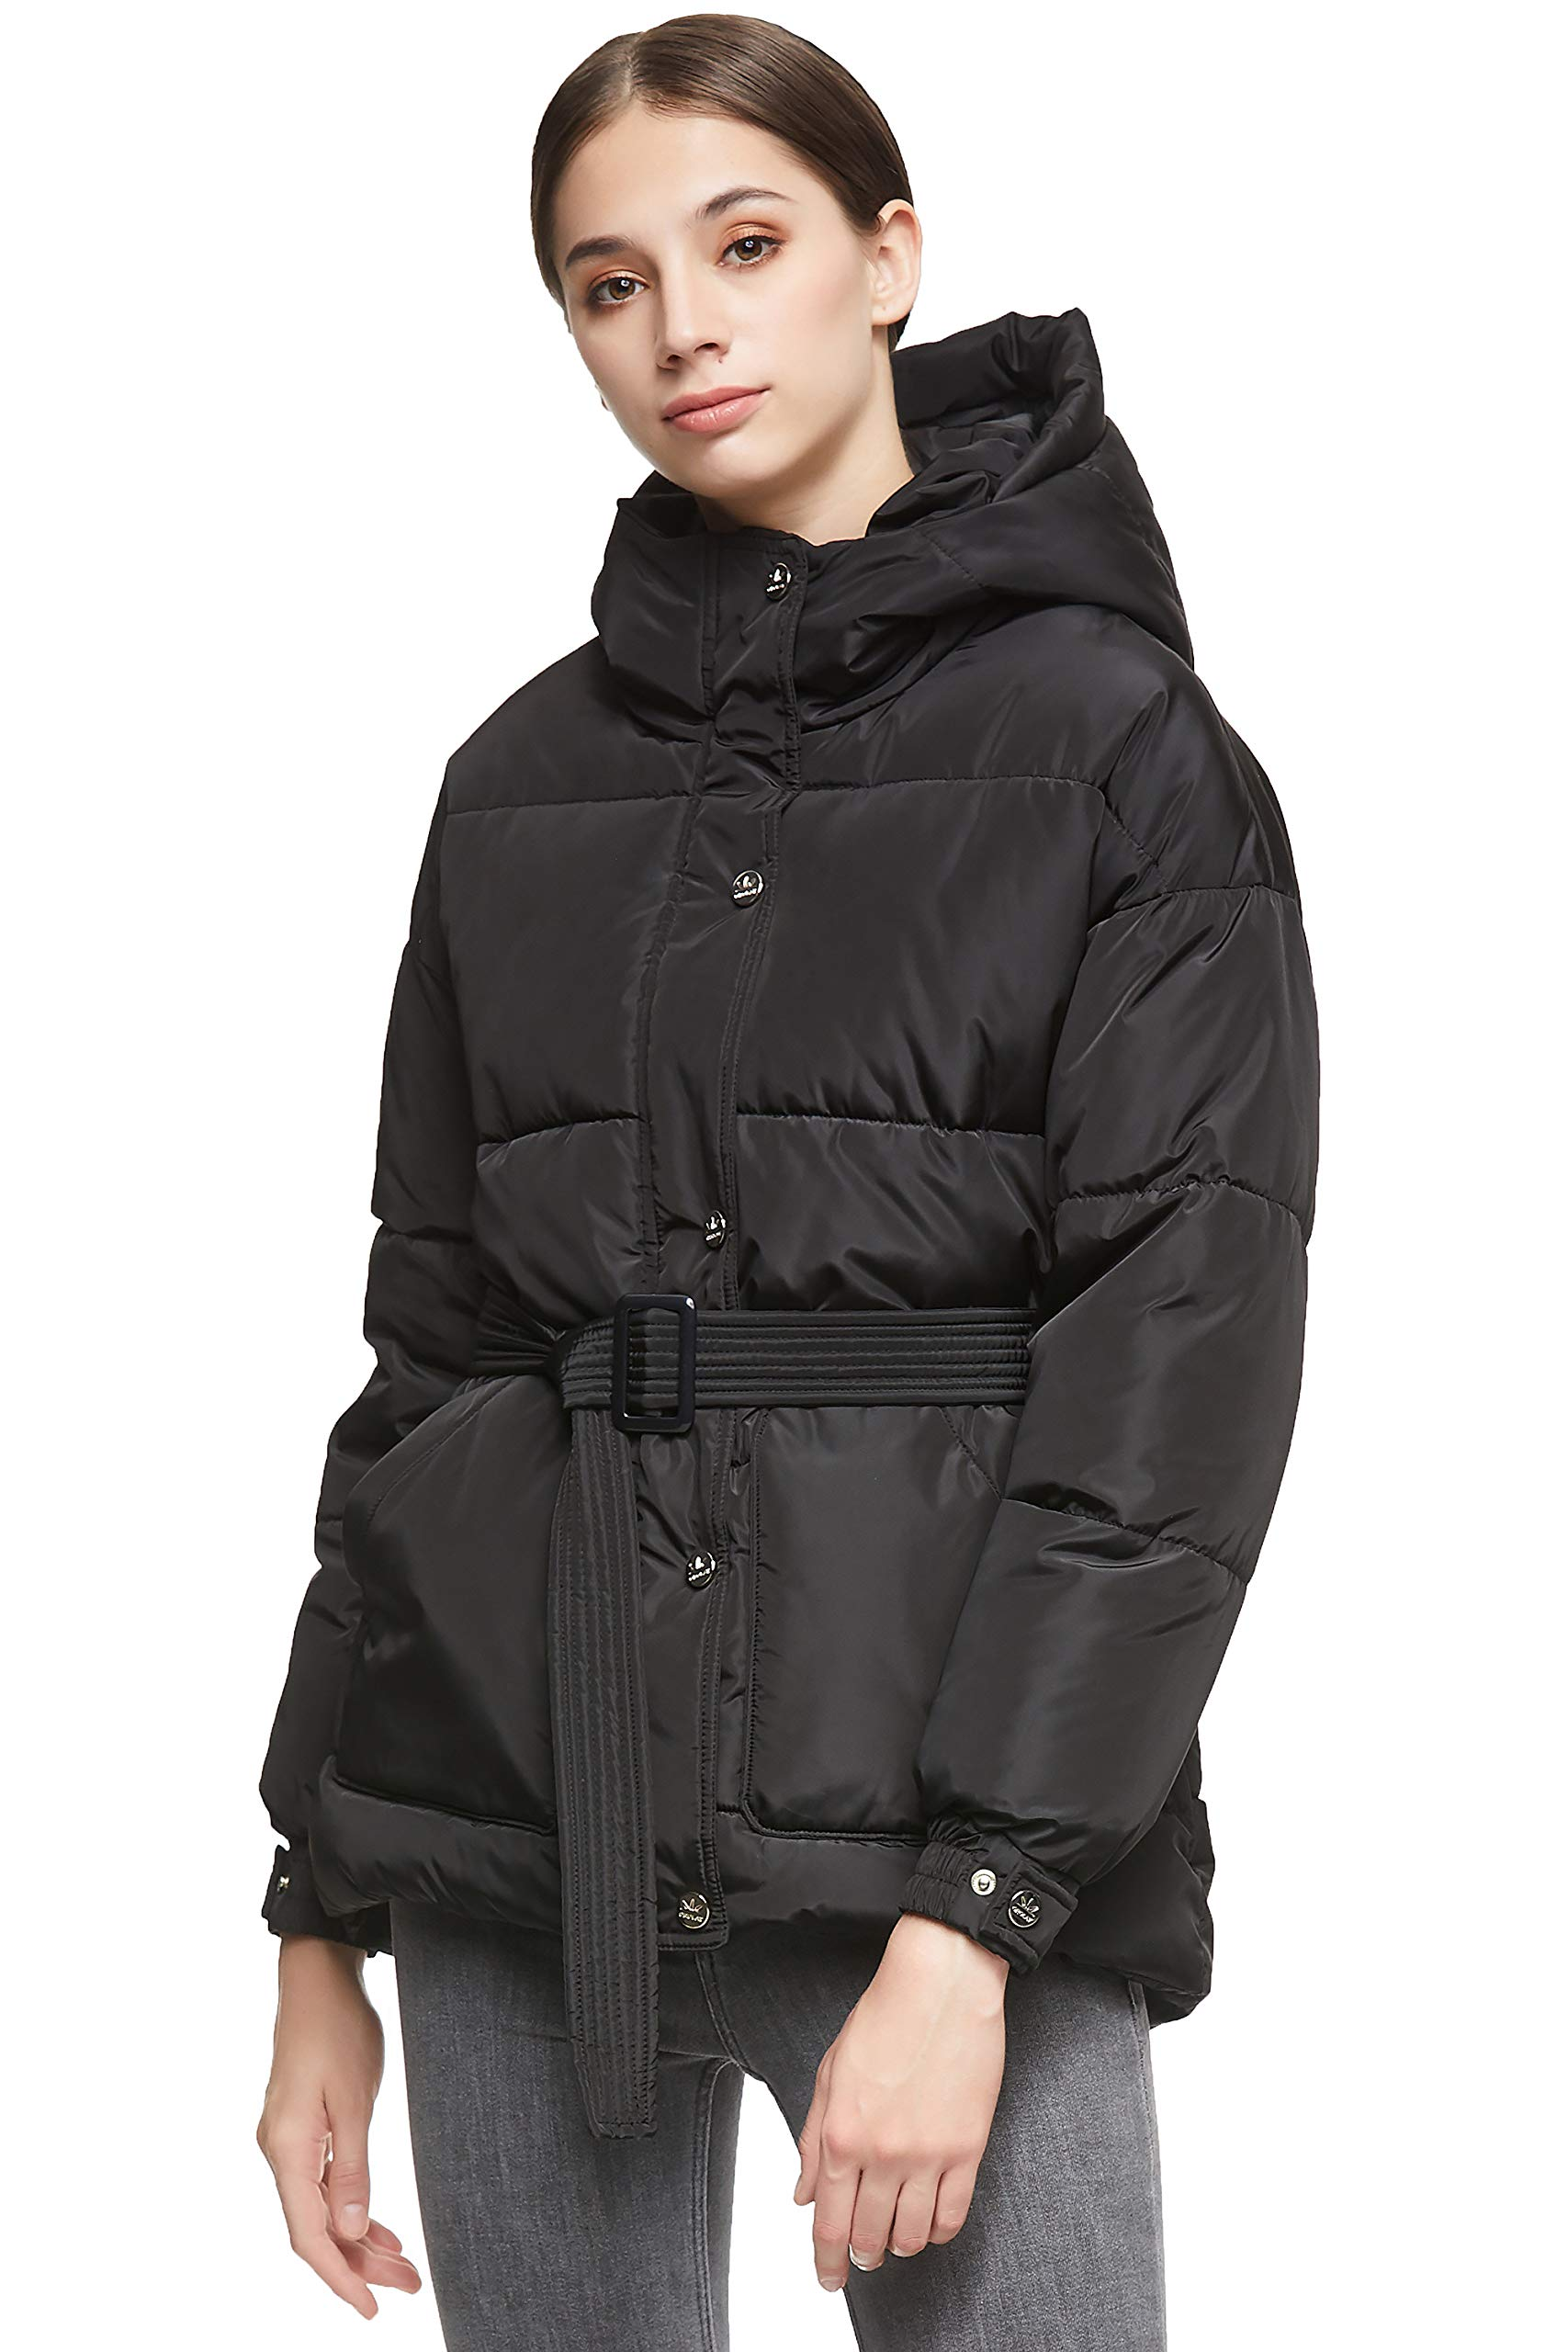 Orolay Women's Short Down Coat with Removable Belt Elastic Cuff Hooded Jacket